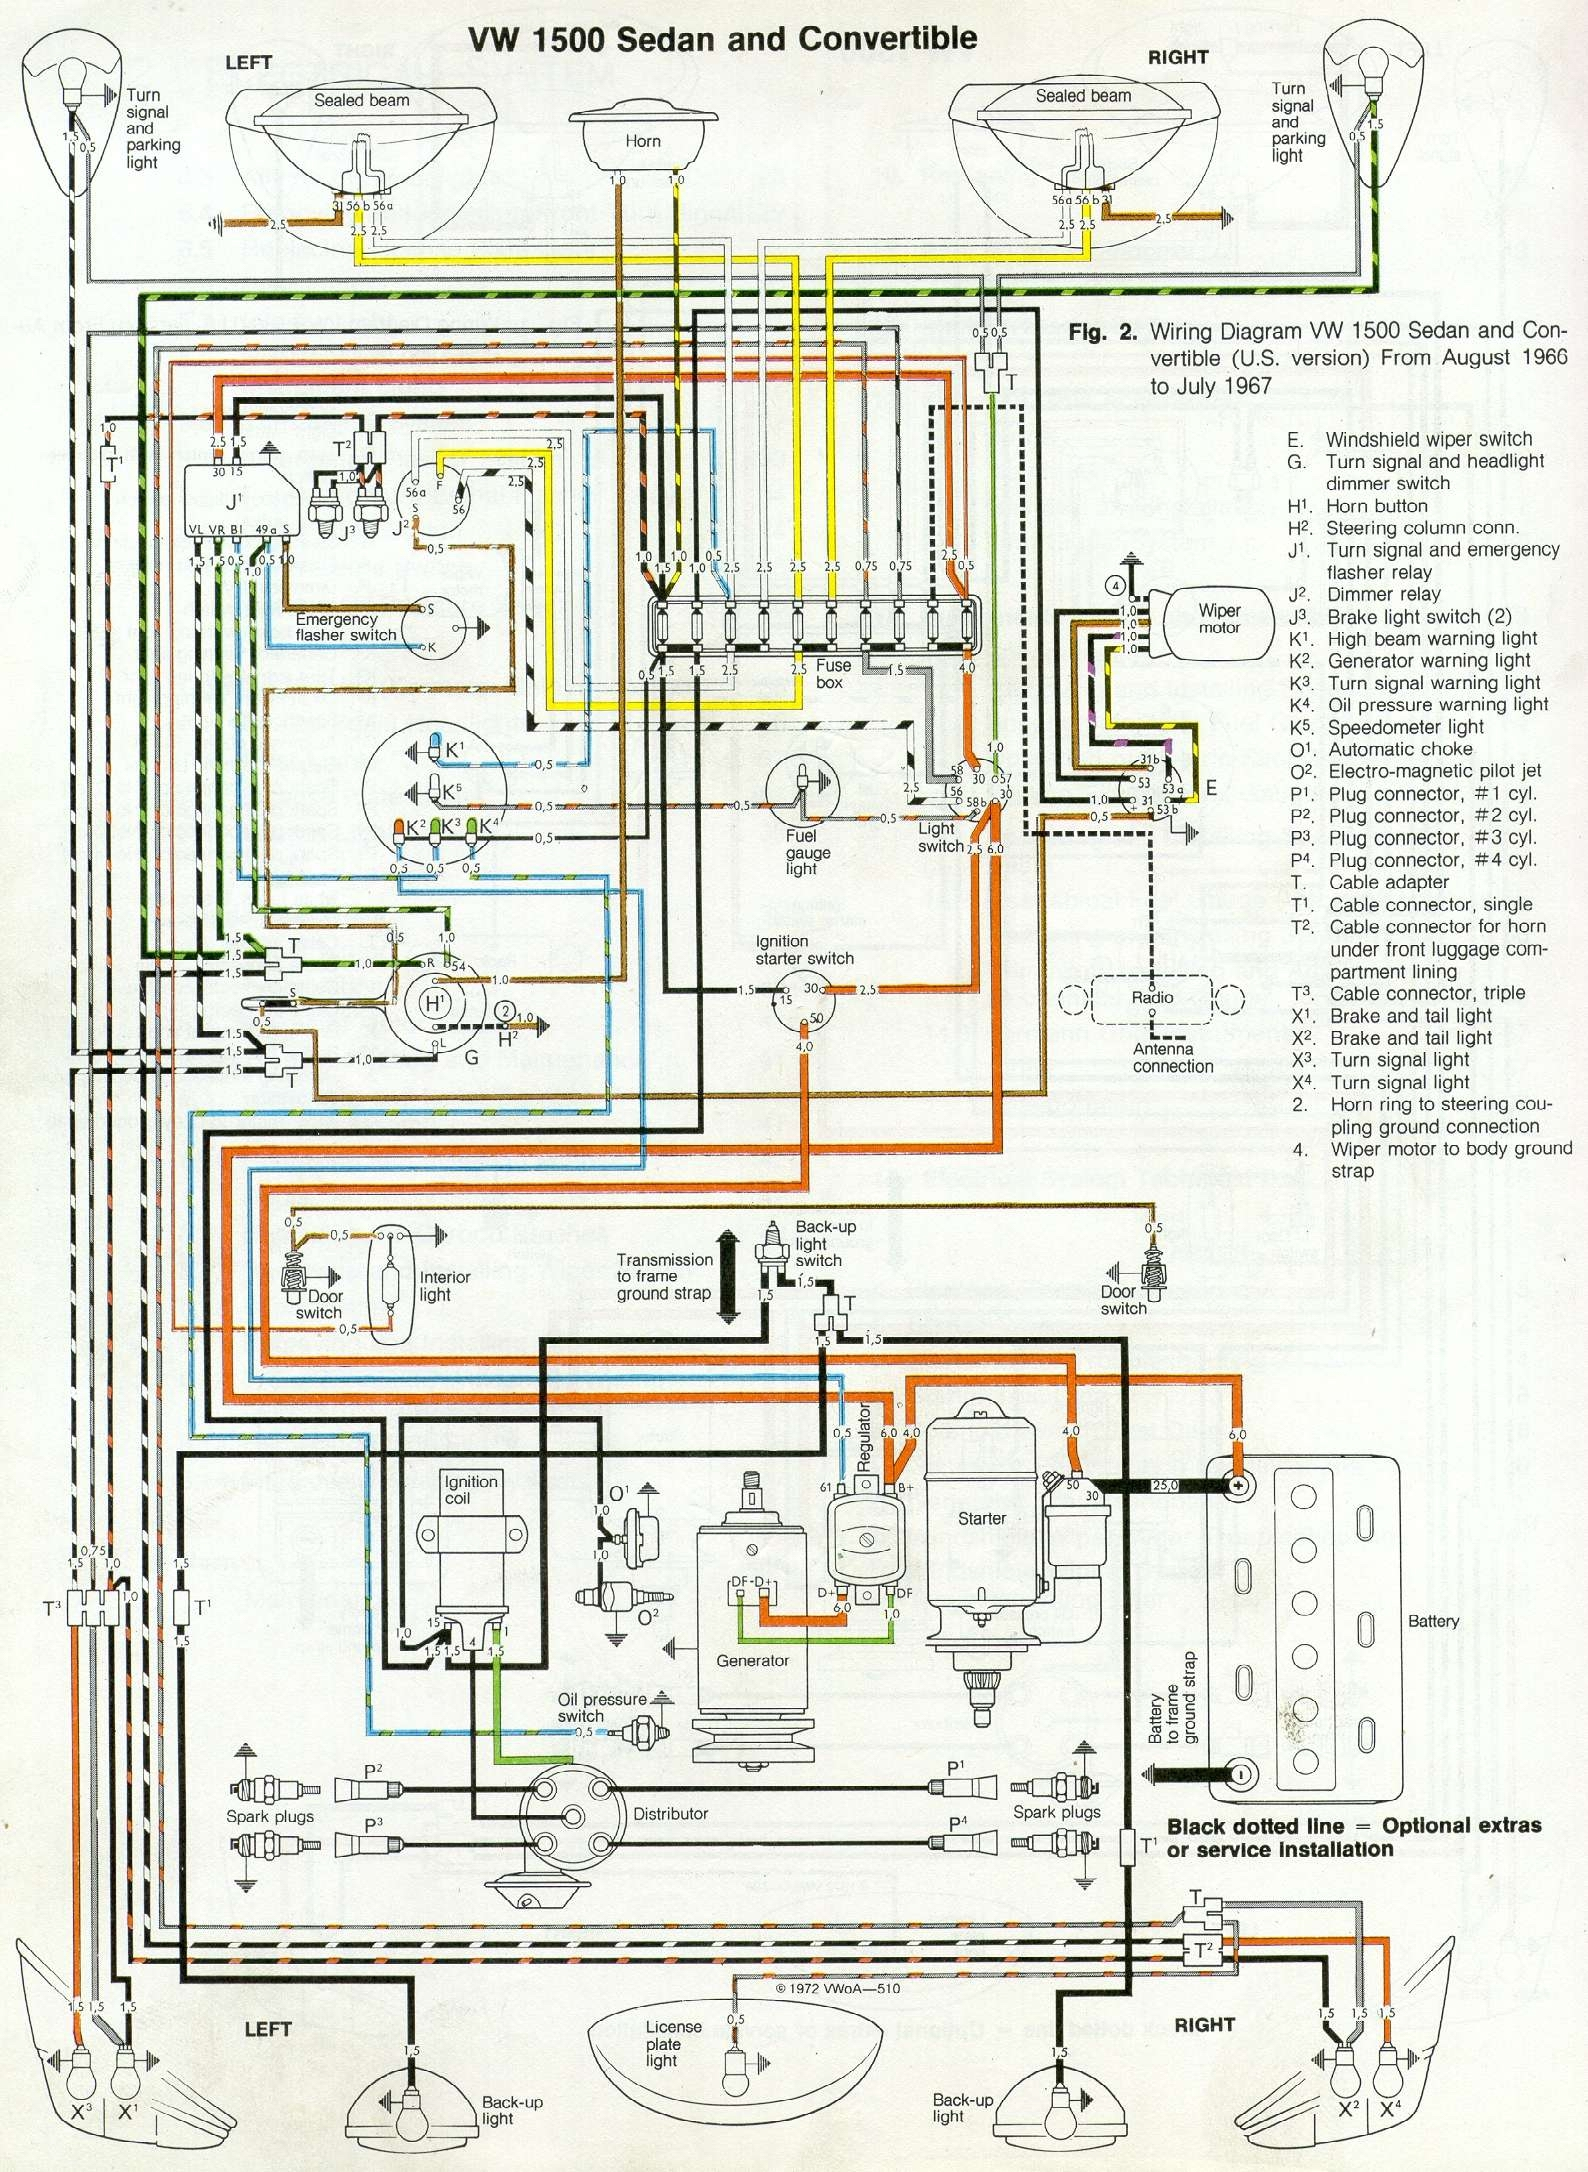 1970 vw tach wiring diagram basic guide wiring diagram \u2022 vw super beetle wiring diagram vw bug wiring example electrical wiring diagram u2022 rh cranejapan co 1967 vw beetle wiring diagram